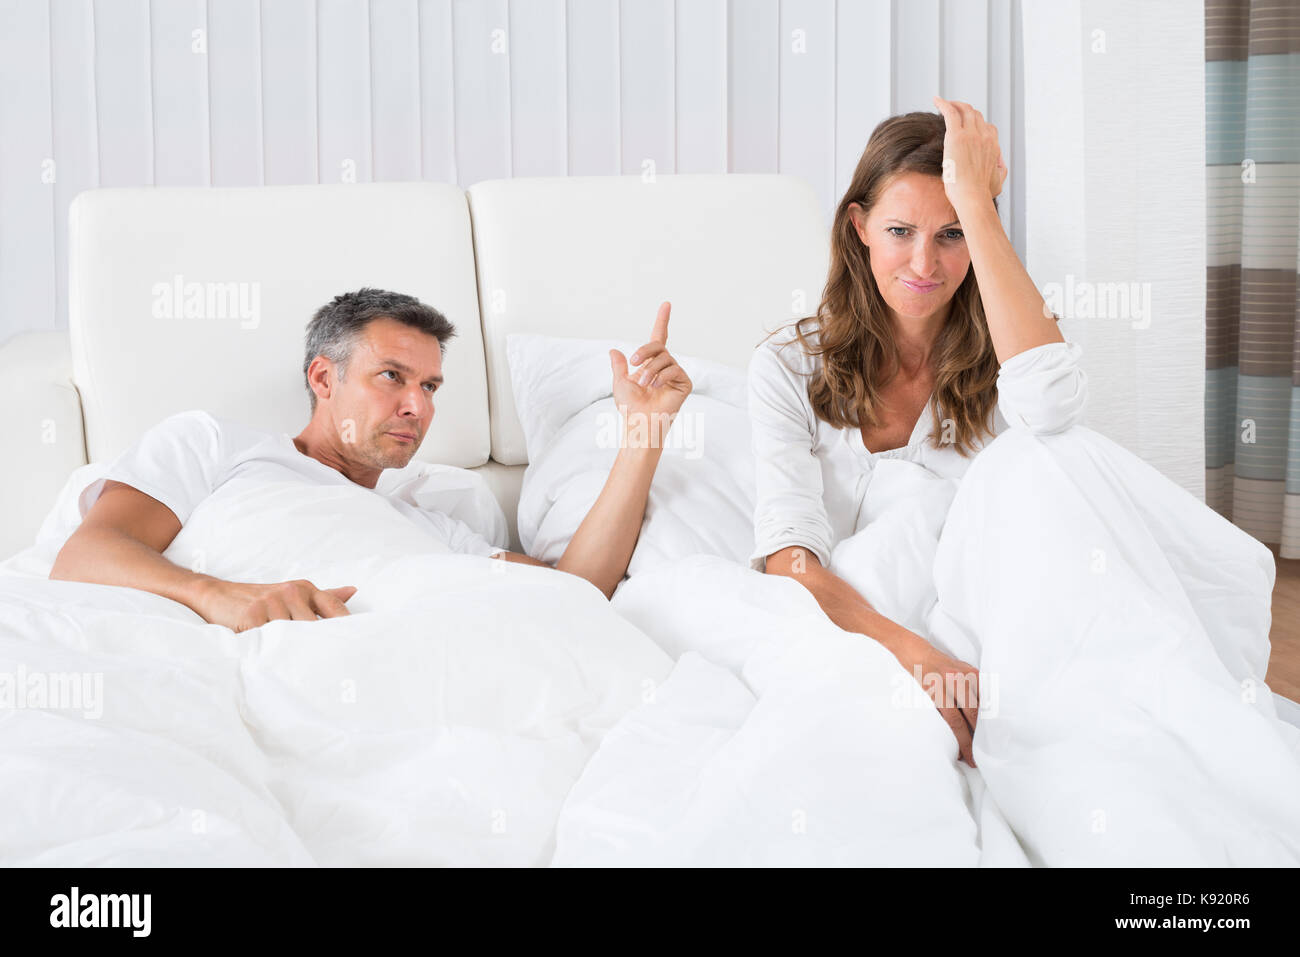 L'homme en faisant valoir avec woman sitting on bed Photo Stock